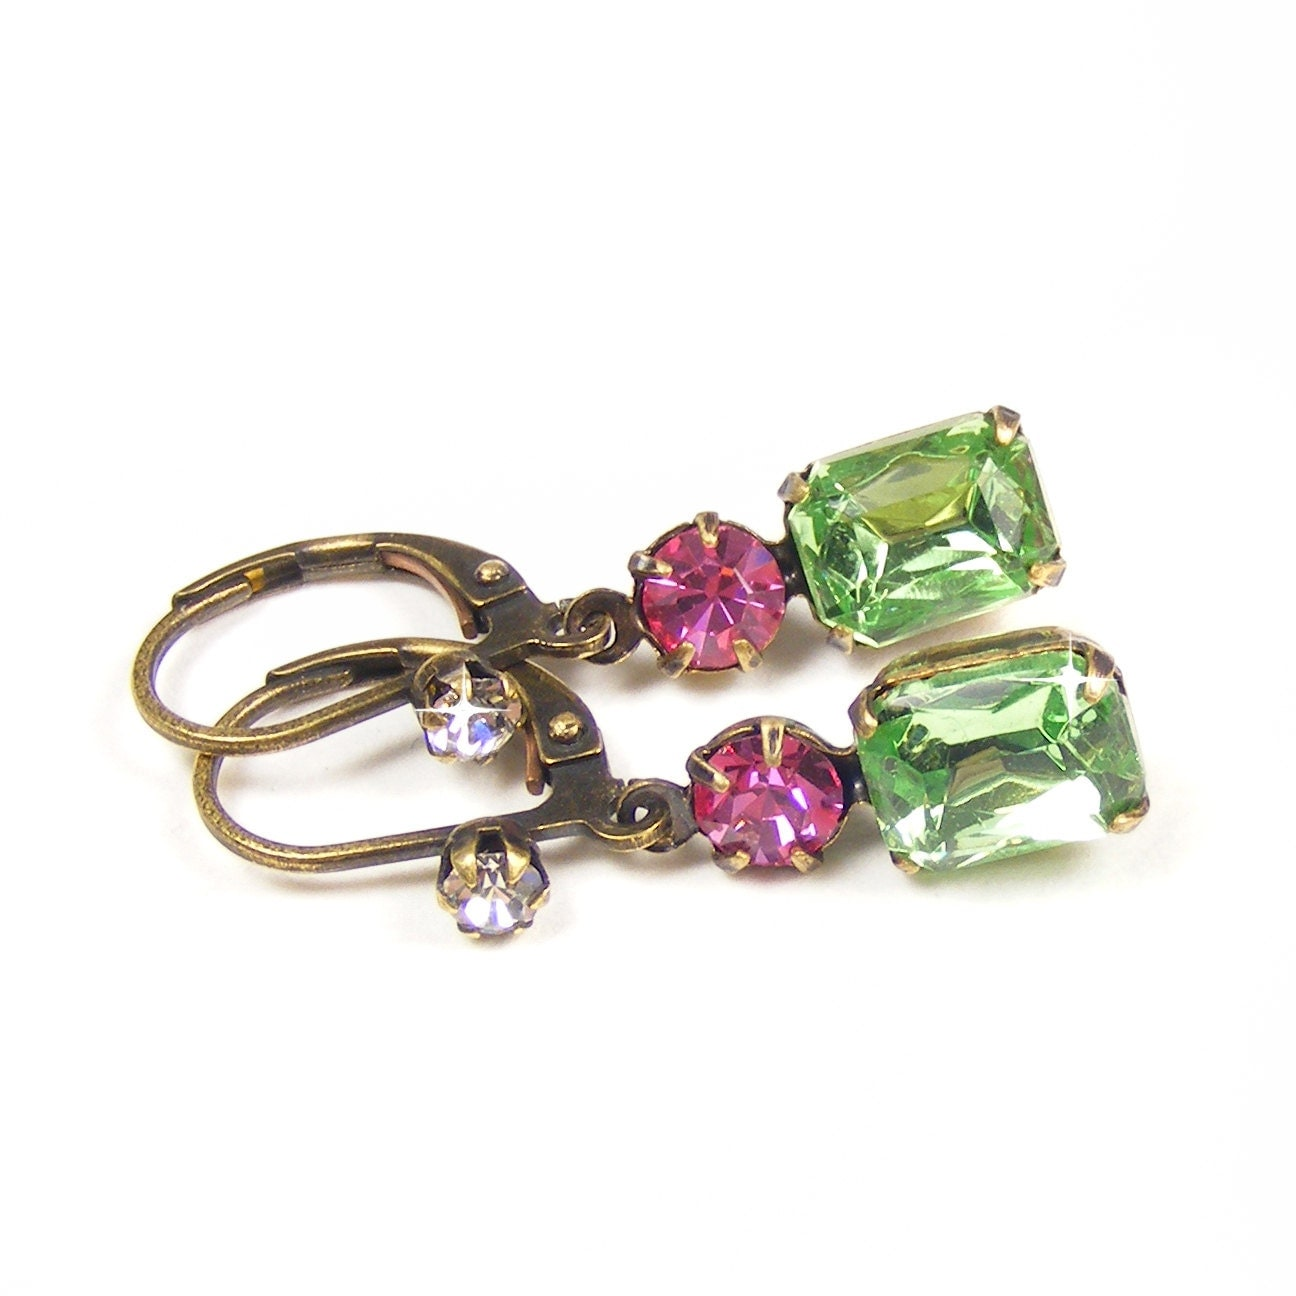 Petite Peridot Earrings, Great Gatsby Style Drop Earrings, Vintage Glass Rhinestones, Pale Green & Rose Pink, August birthday